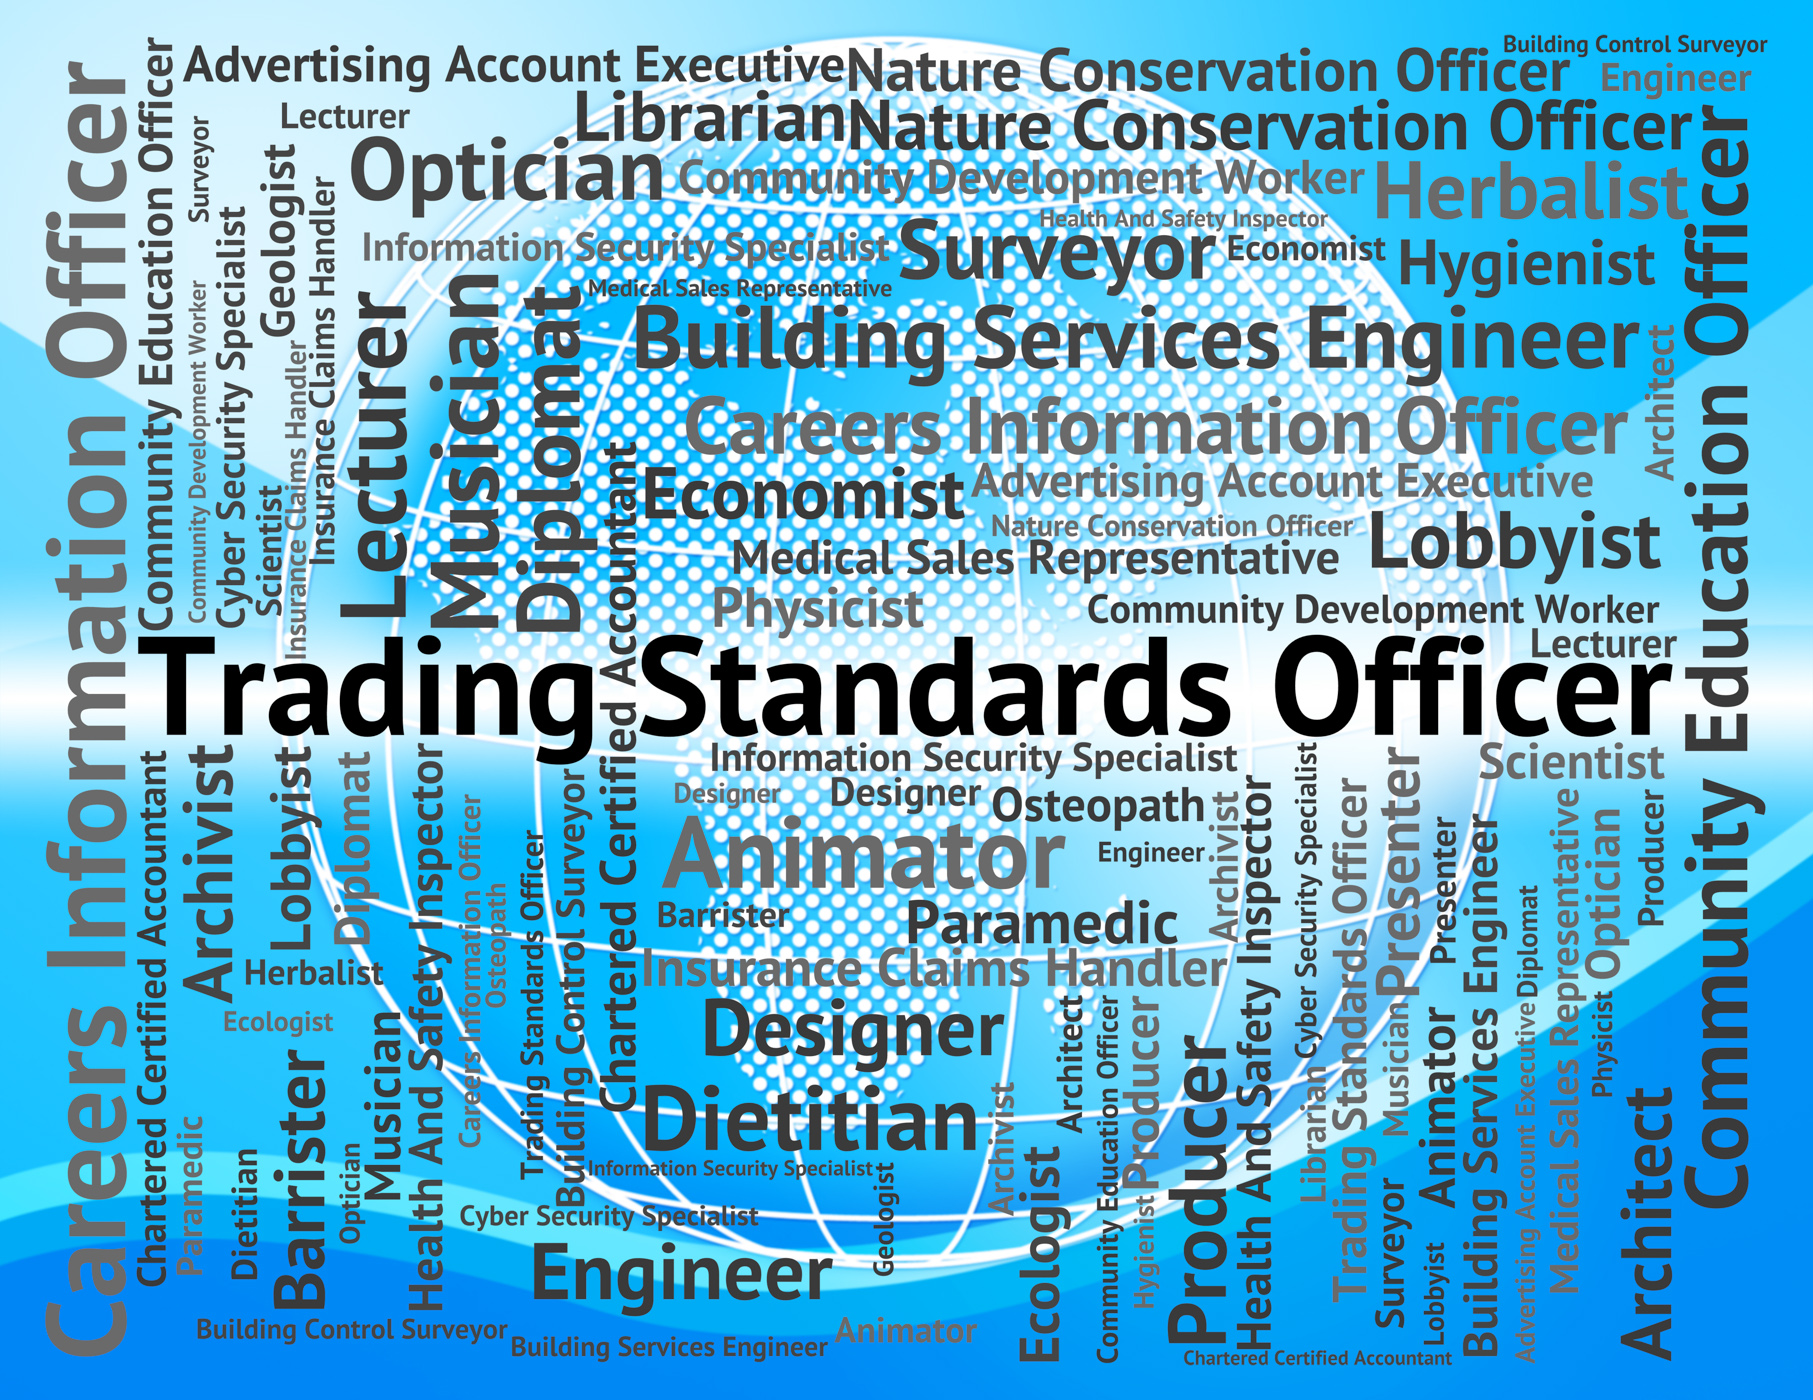 Trading standards officer represents officers position and e-commerce photo